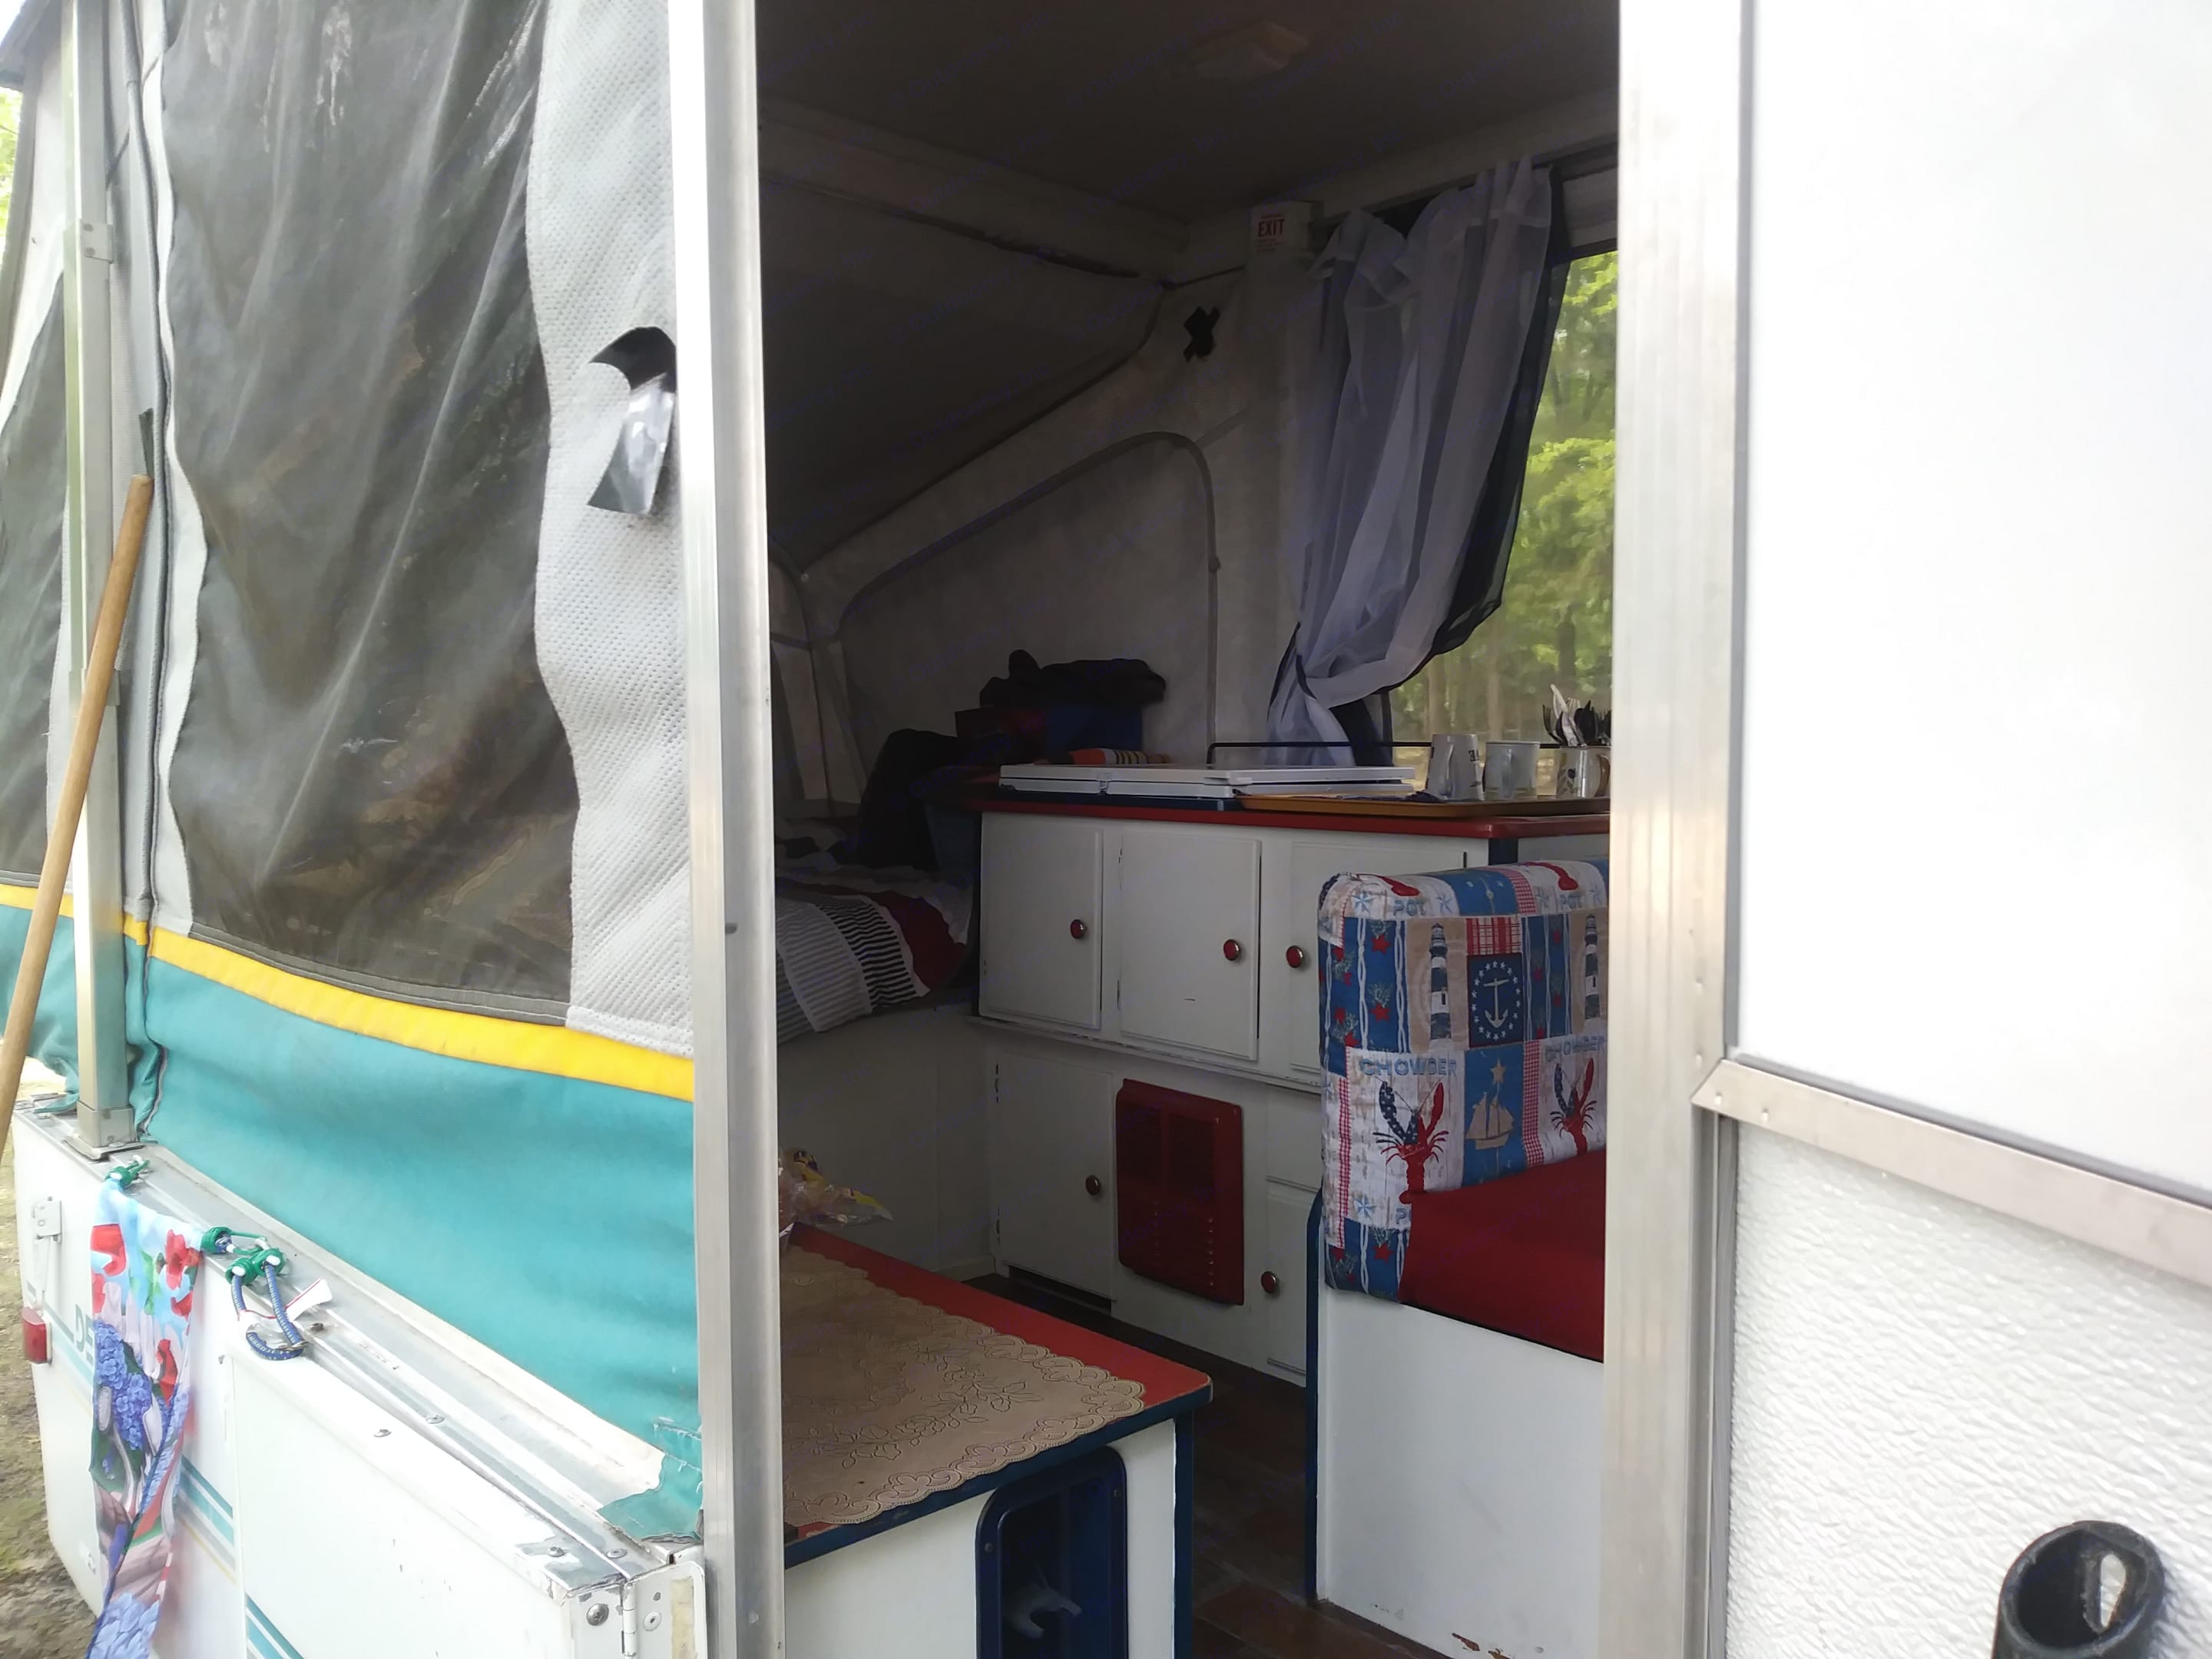 View coming into camper. Coleman Destiny Royale 1993